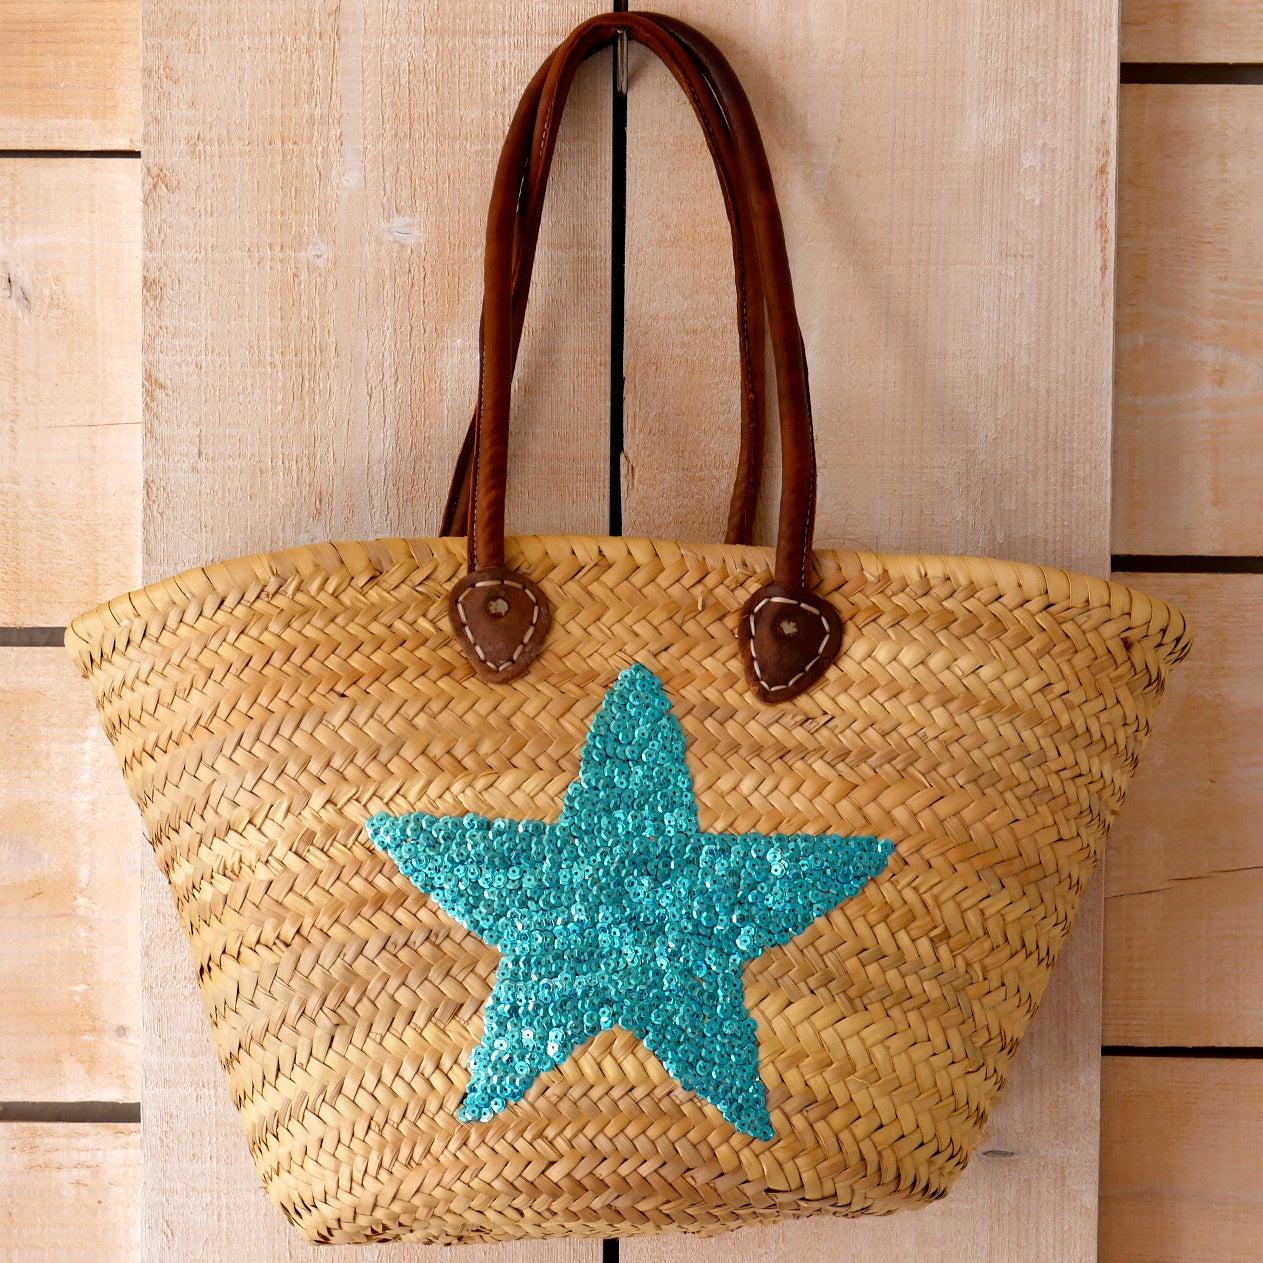 Star Sequin Basket